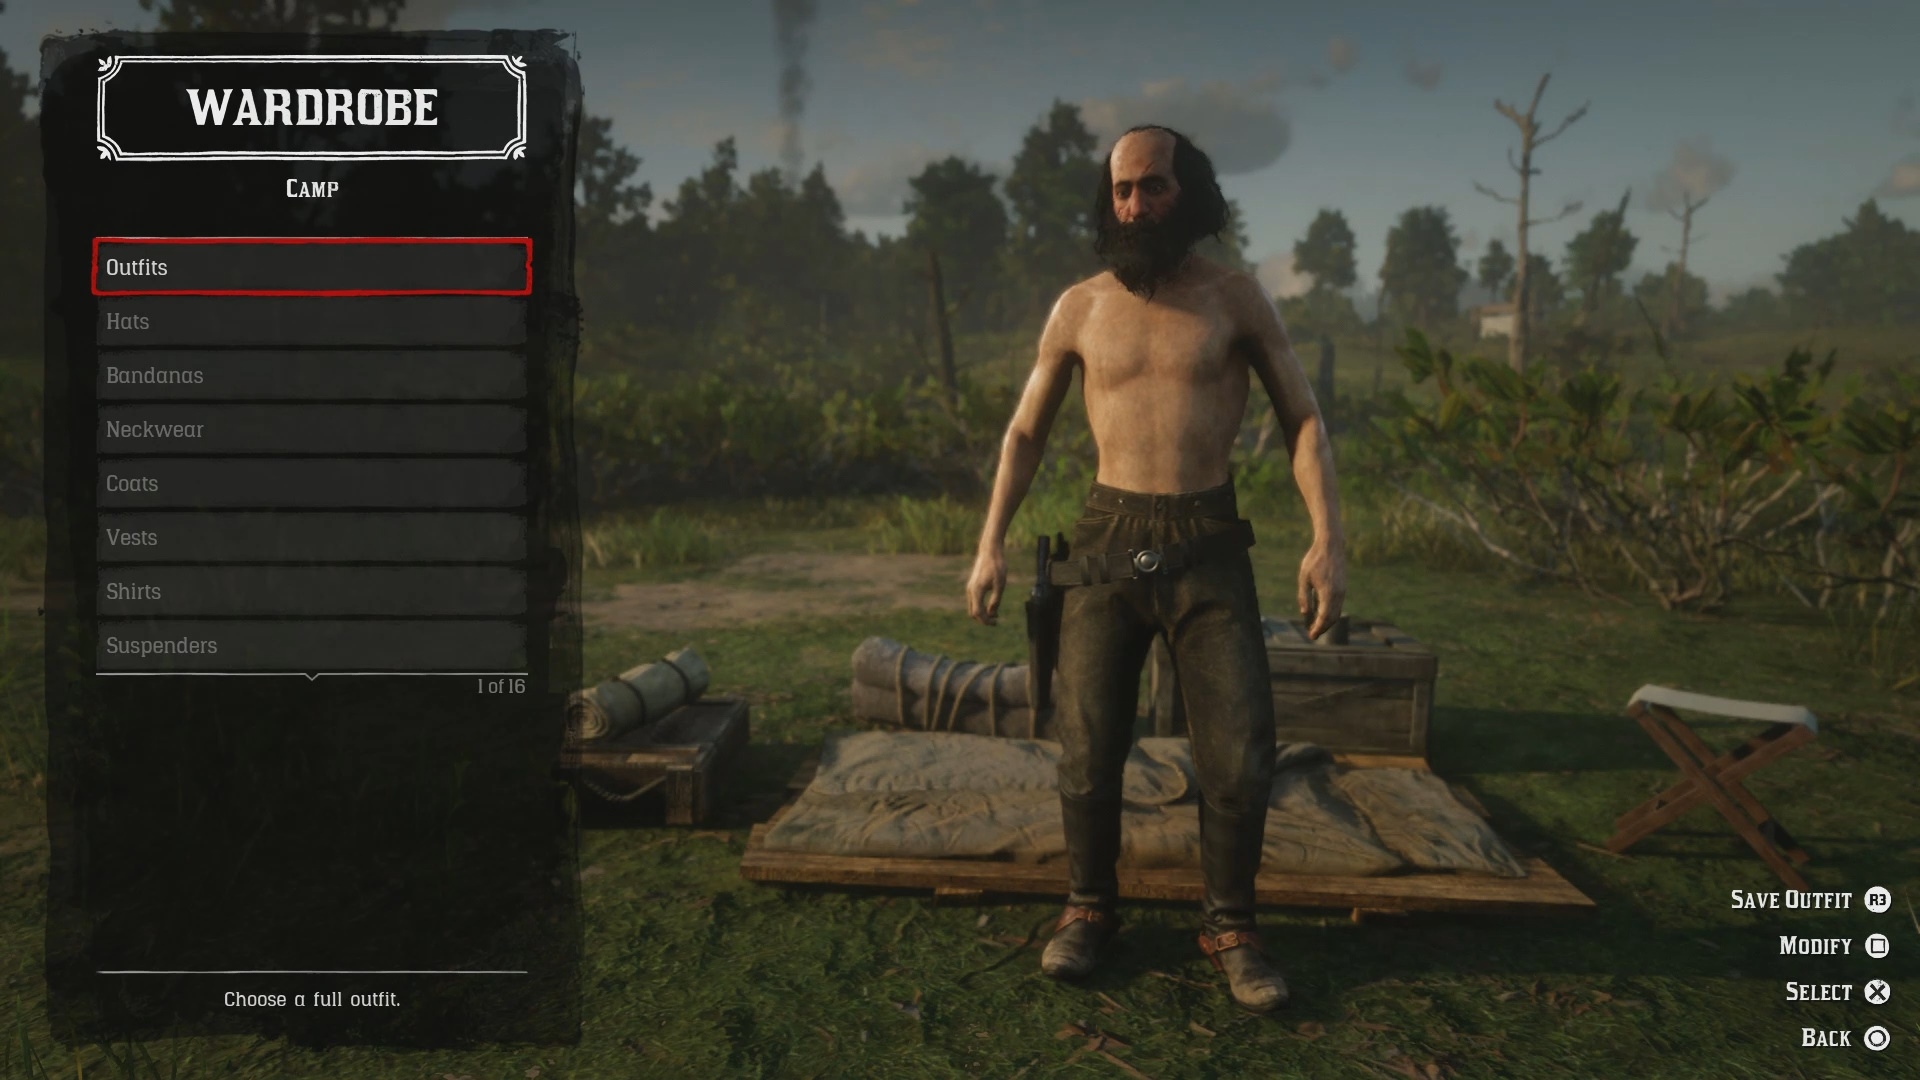 How to Change Outfits in Red Dead Online